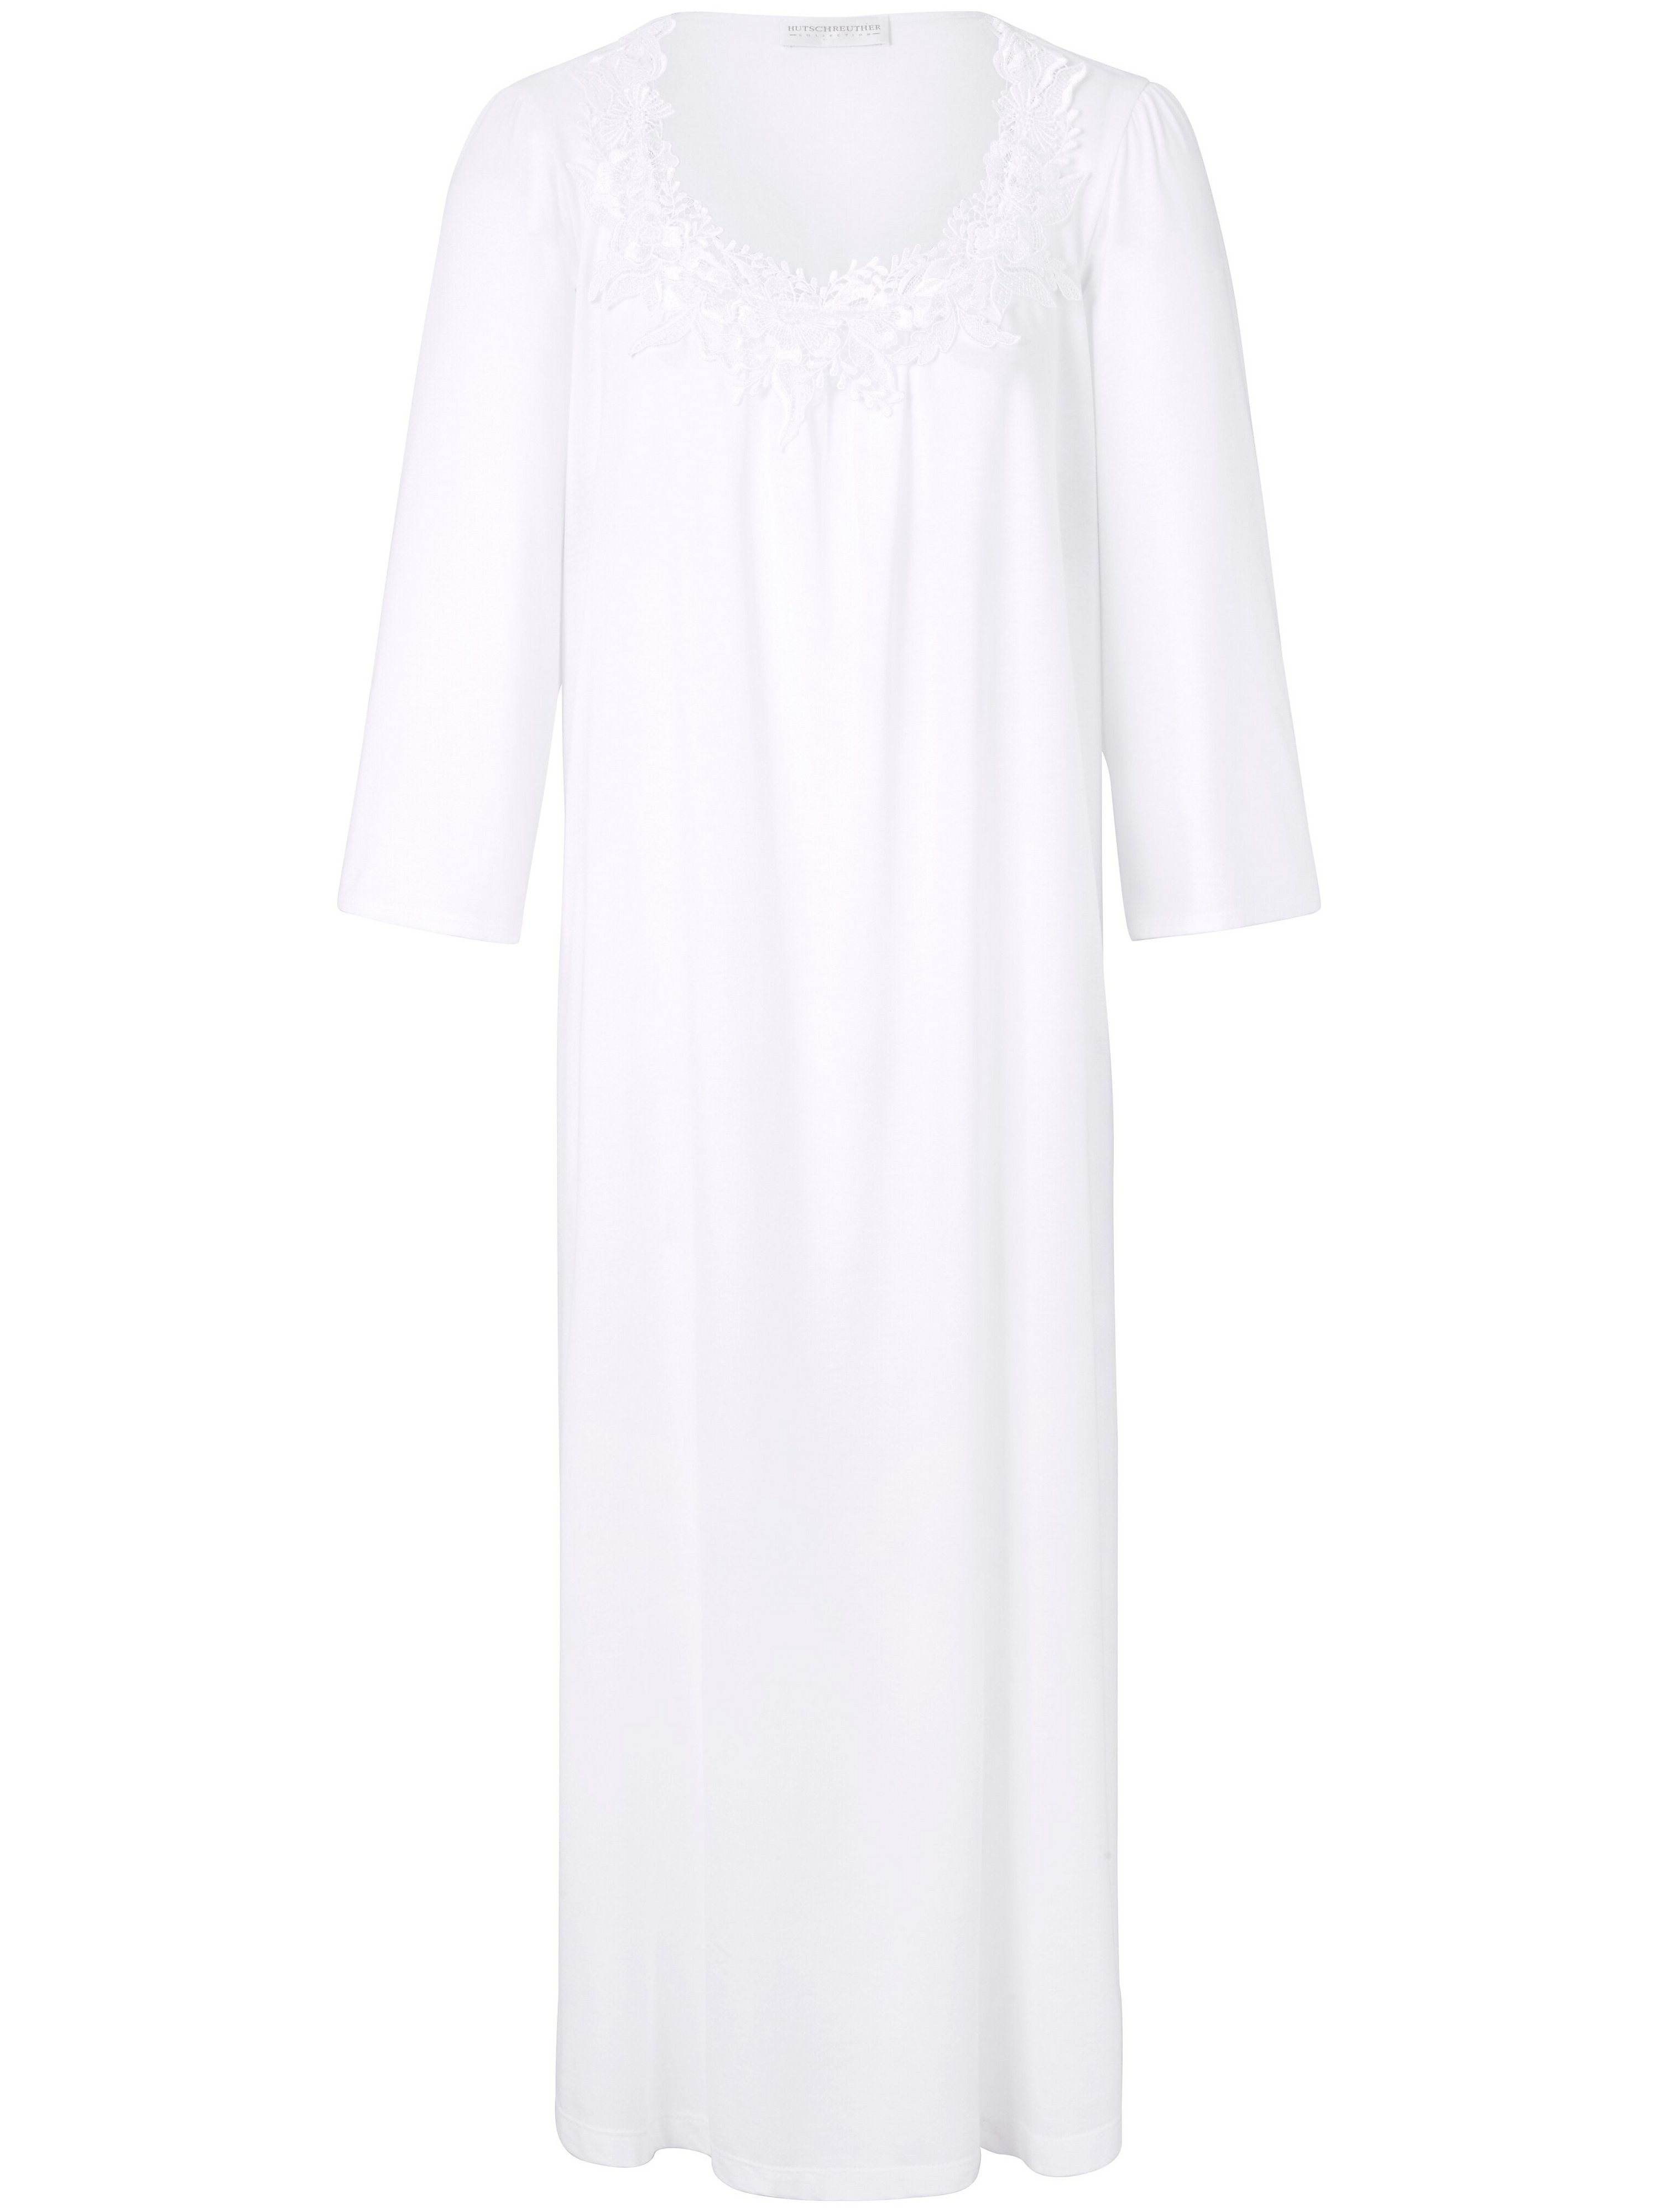 La chemise nuit  Hutschreuther blanc taille 52